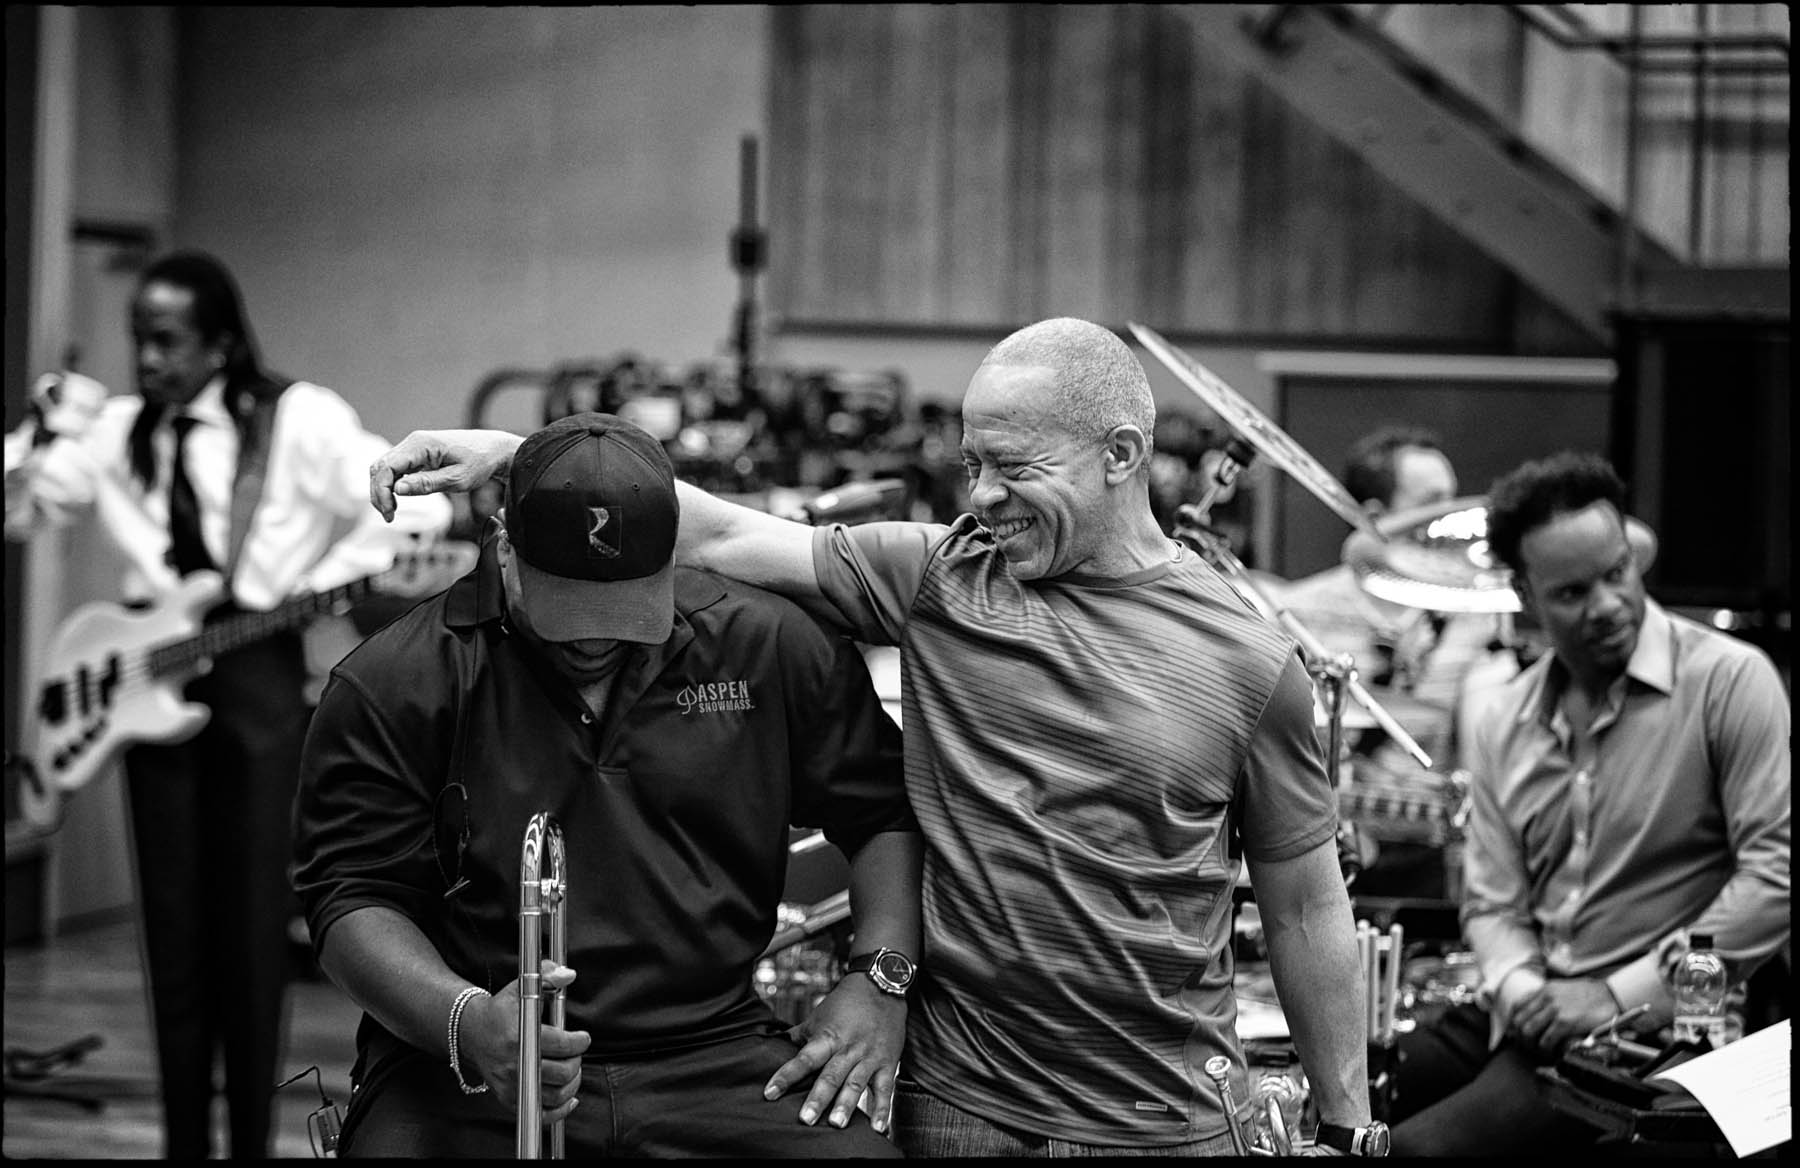 Earth Wind & Fire rehearsal at Abbey Road by Christie Goodwin